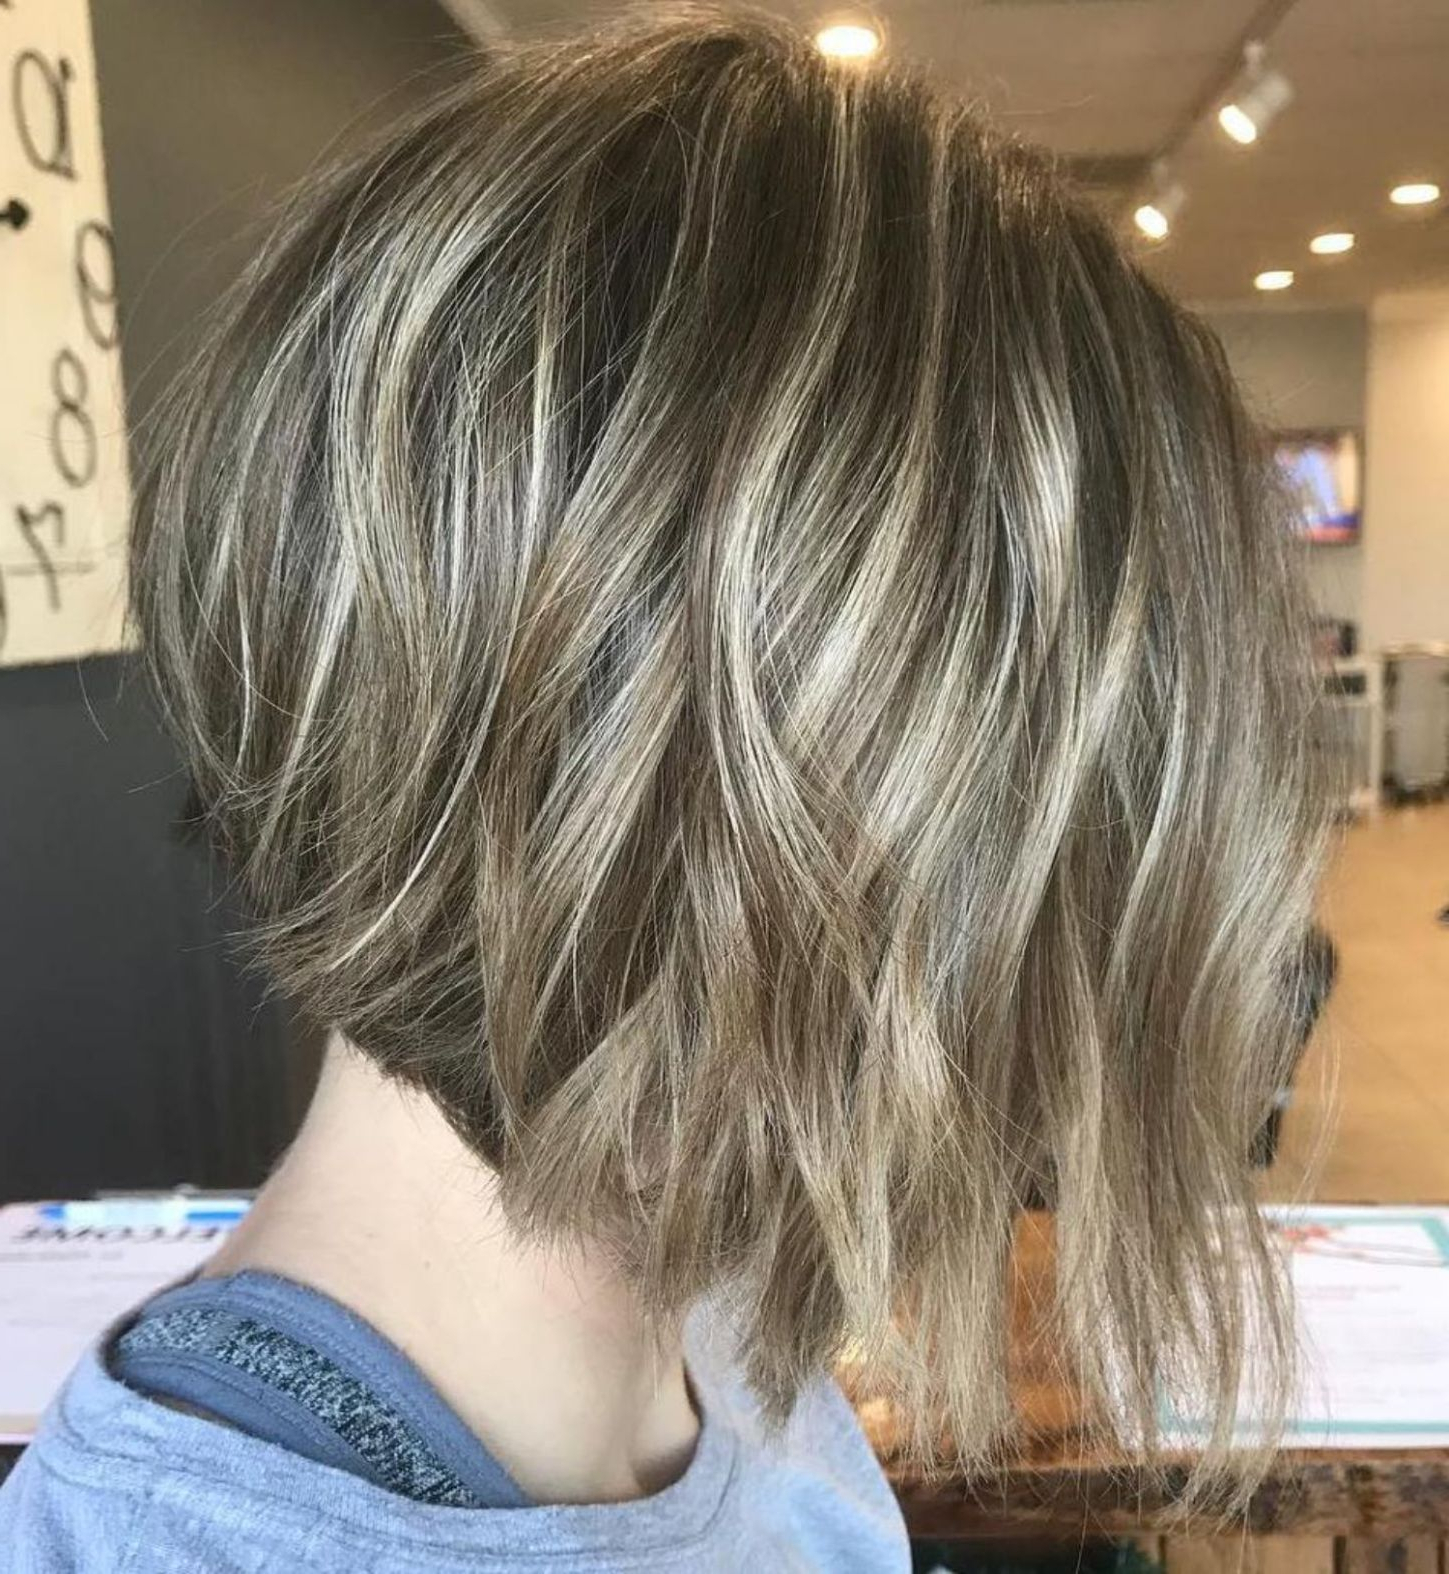 60 Layered Bob Styles: Modern Haircuts With Layers For Any Occasion Intended For Choppy Tousled Bob Haircuts For Fine Hair (View 12 of 20)